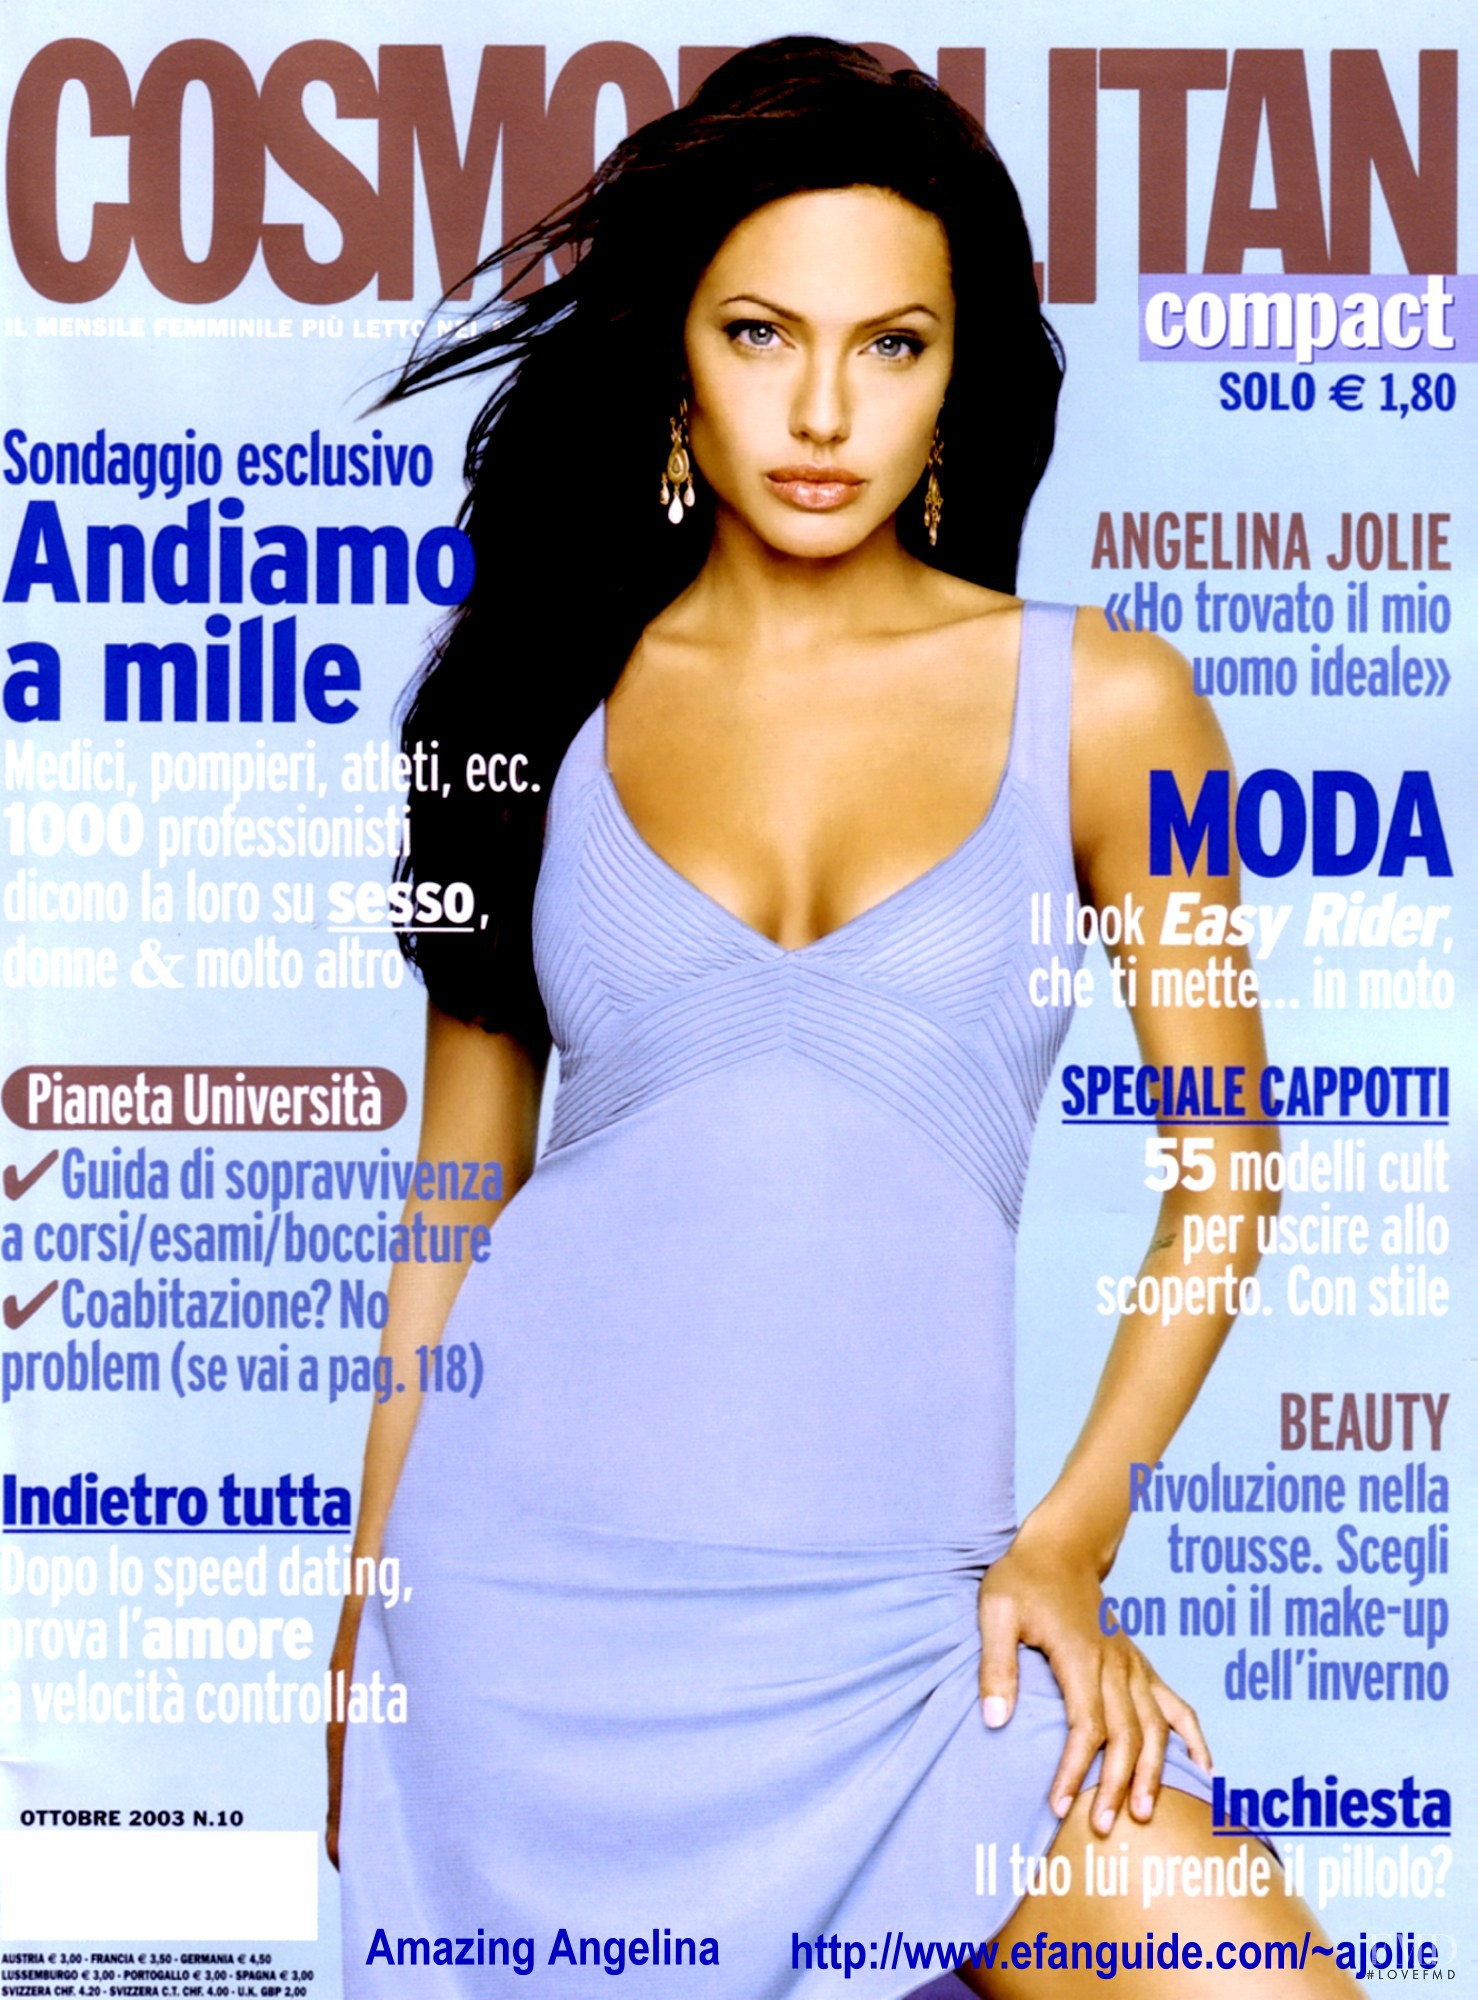 Jolie Magazine November 2017 Issue: Cover Of Cosmopolitan Italy With Angelina Jolie, October